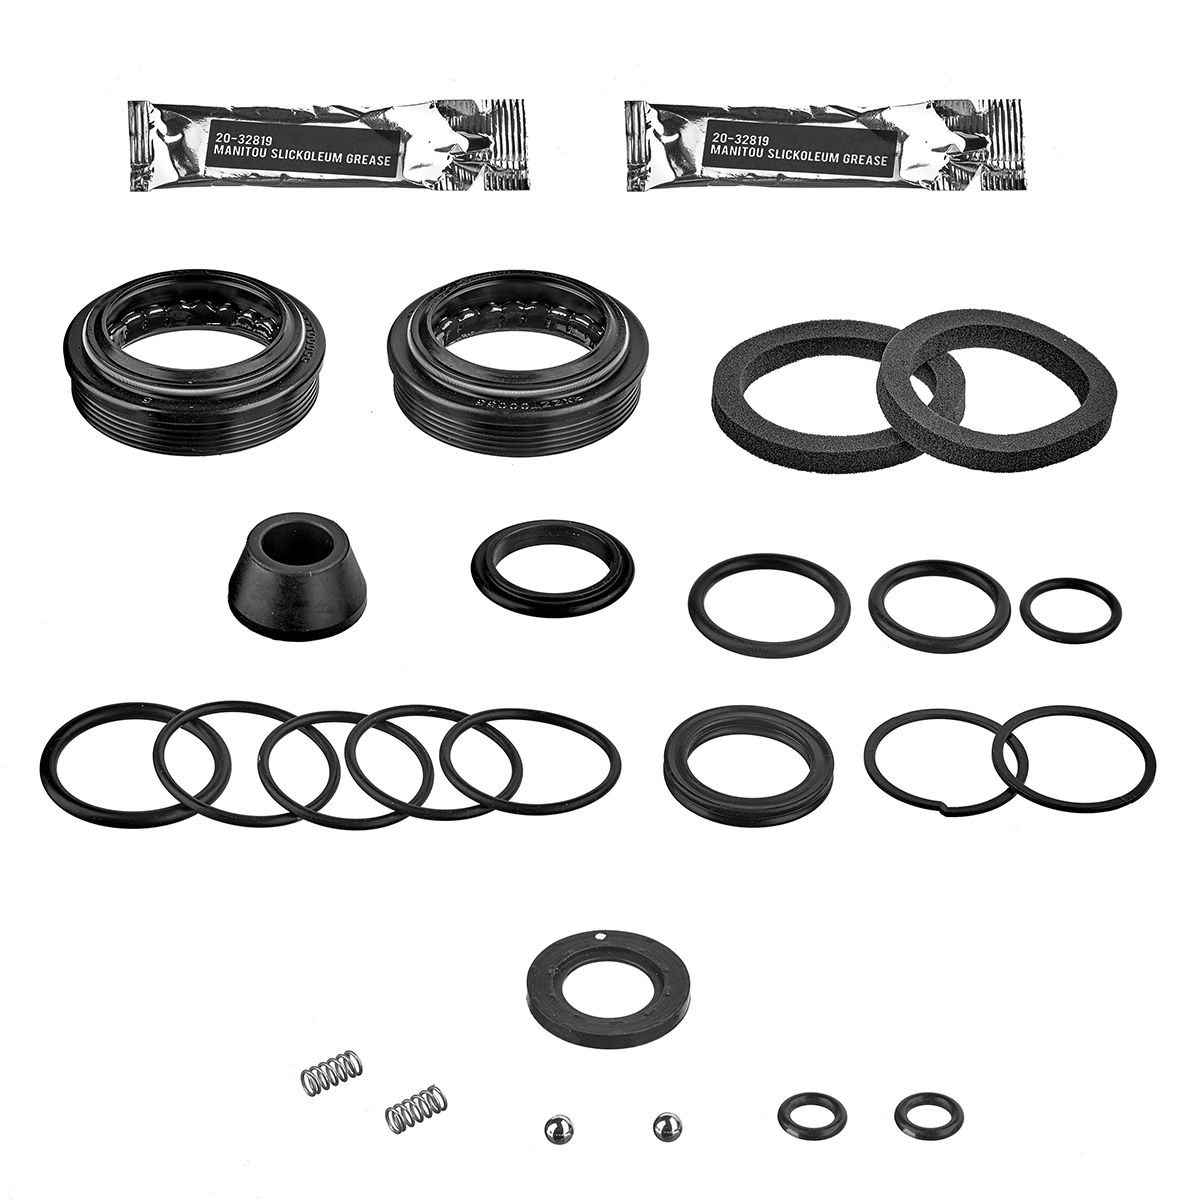 Service Kit 30 mm for R7 Pro